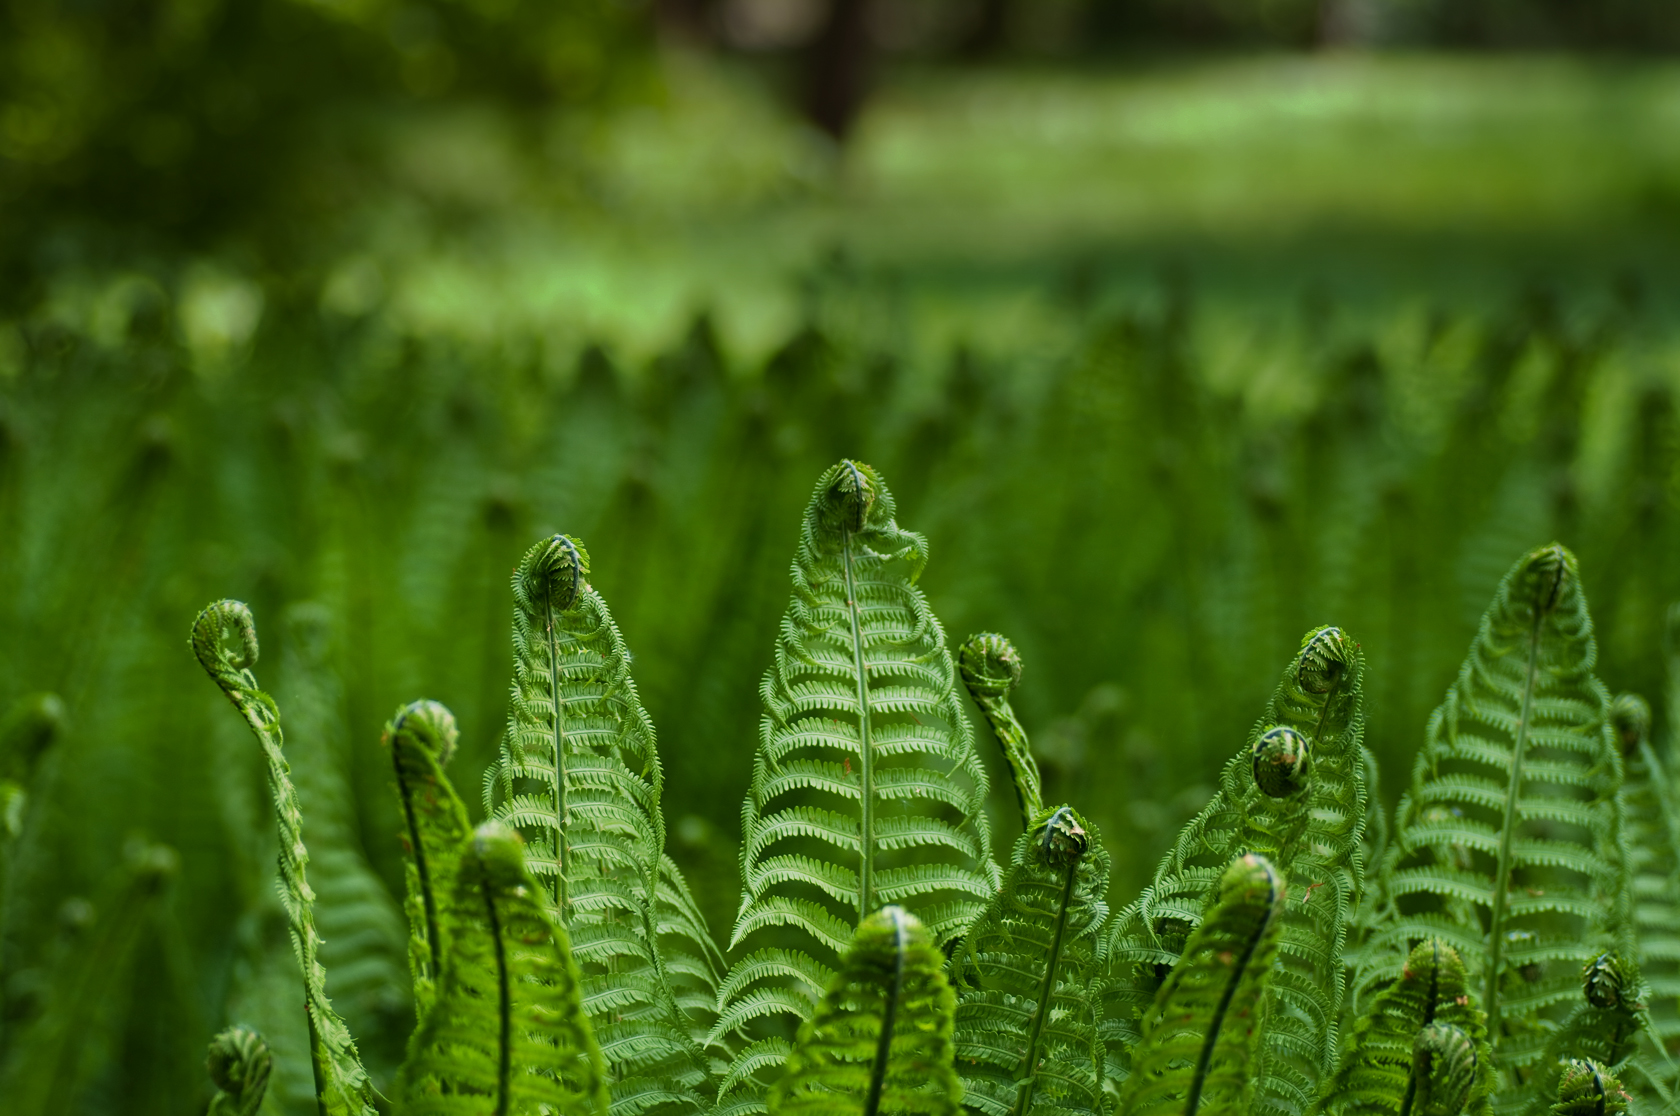 Green Fern Wallpaper Wallpapersafari